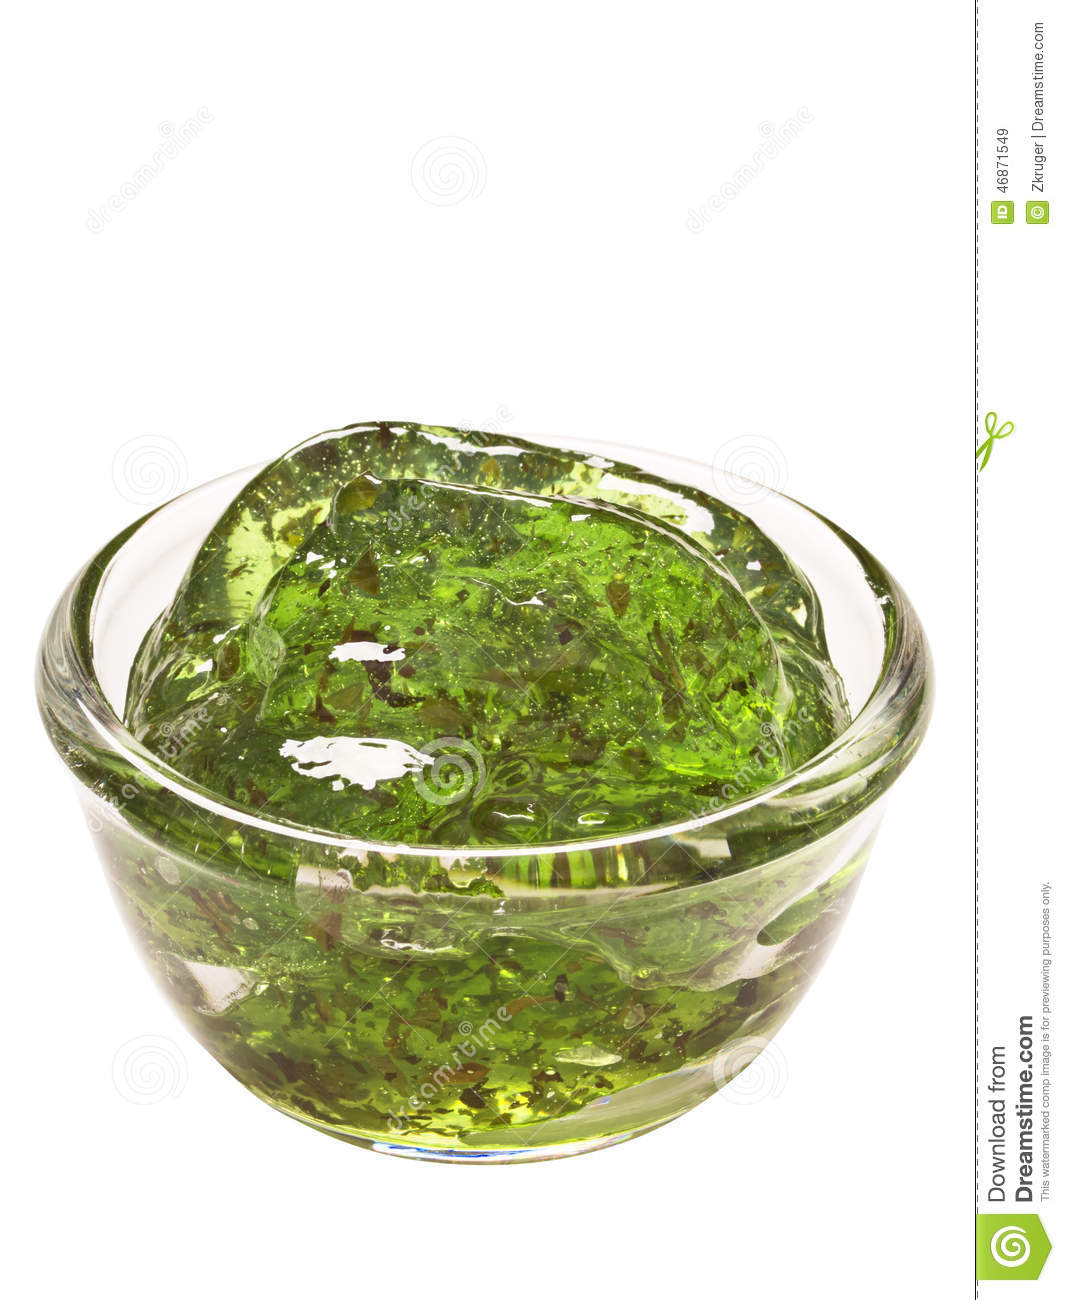 Mint Jelly Sauce Stock Photo - Image: 46871549